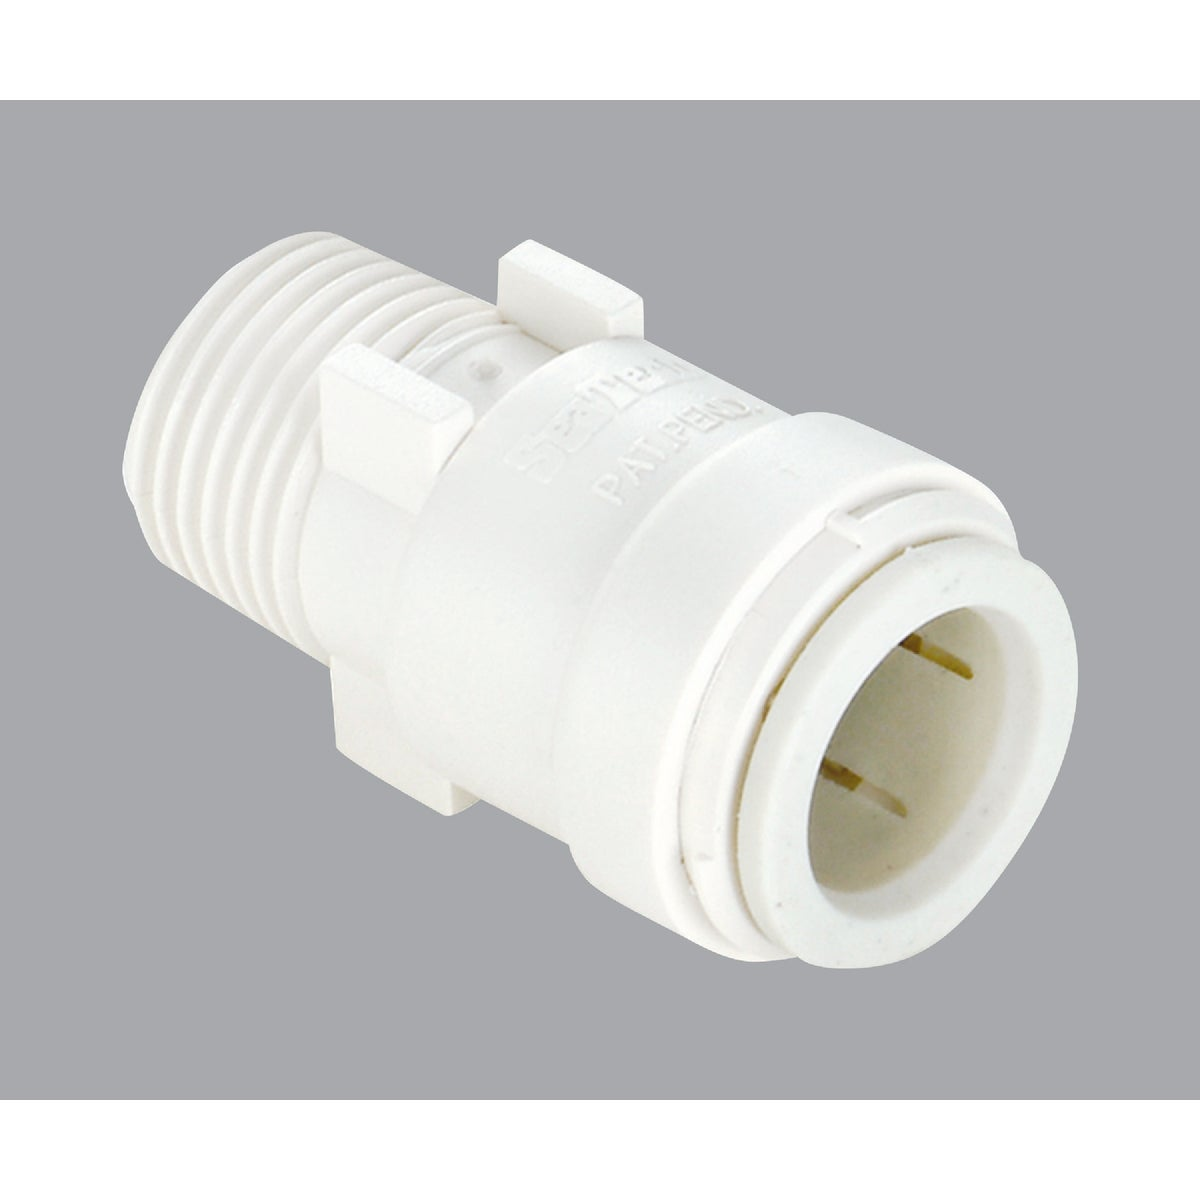 1/2CTSX1/2MPT ADAPTER - P-610 by Watts Pex